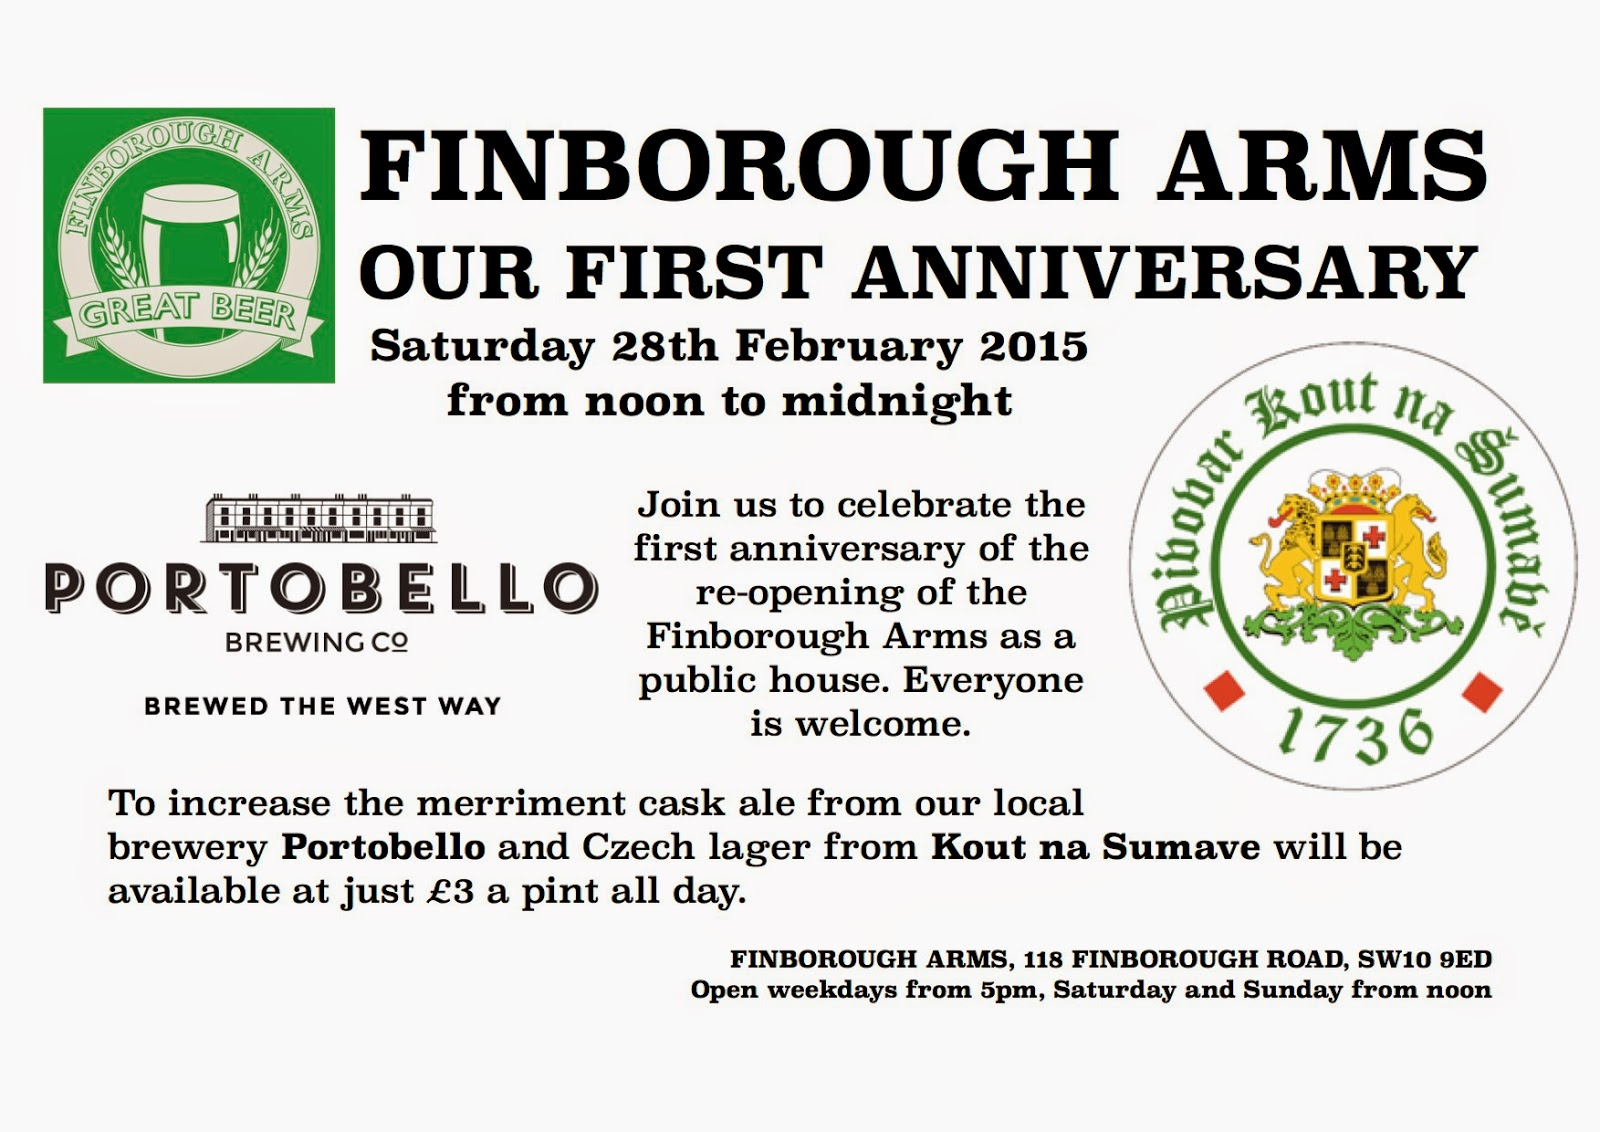 Finborough Arms - our first anniversary - Saturday 28th February